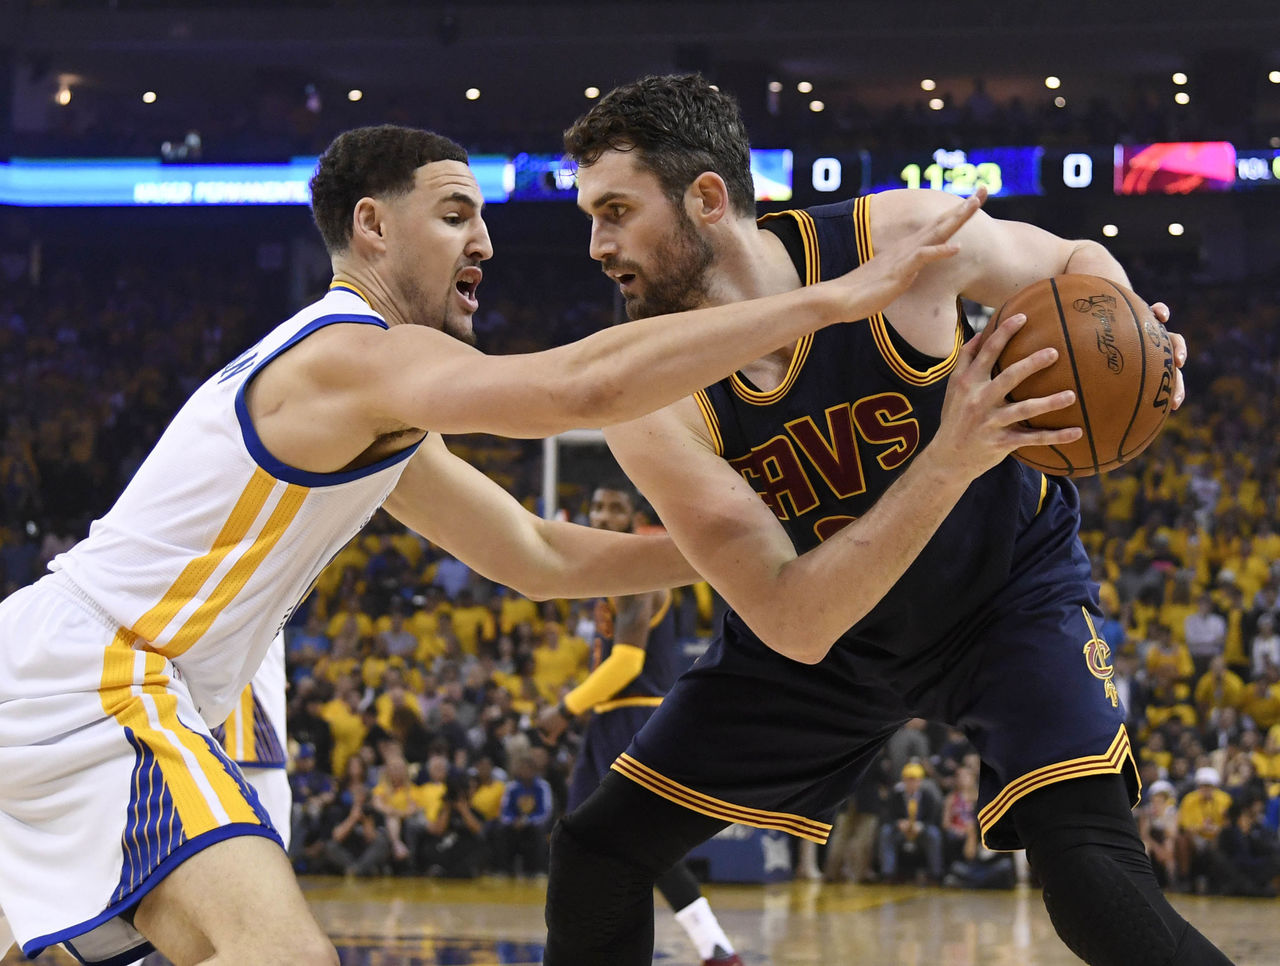 Cropped 2017 06 02t012525z 861875393 nocid rtrmadp 3 nba finals cleveland cavaliers at golden state warriors